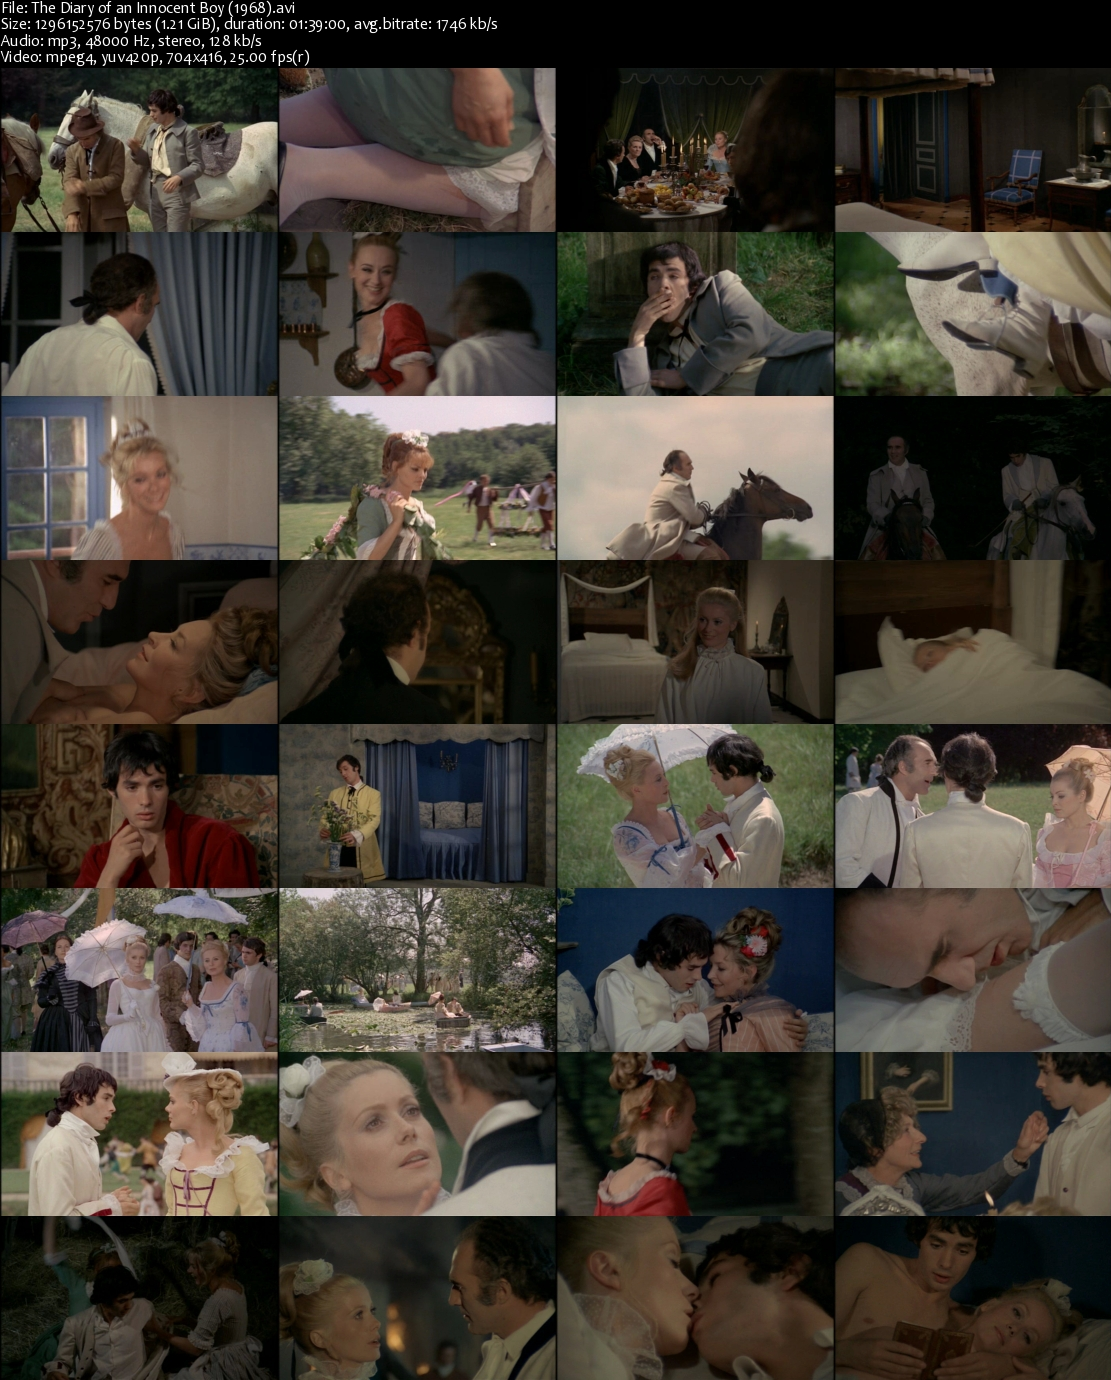 Innocent Sex Scene the diary of an innocent boy (1968) dvdrip [1.21gb] benjamin